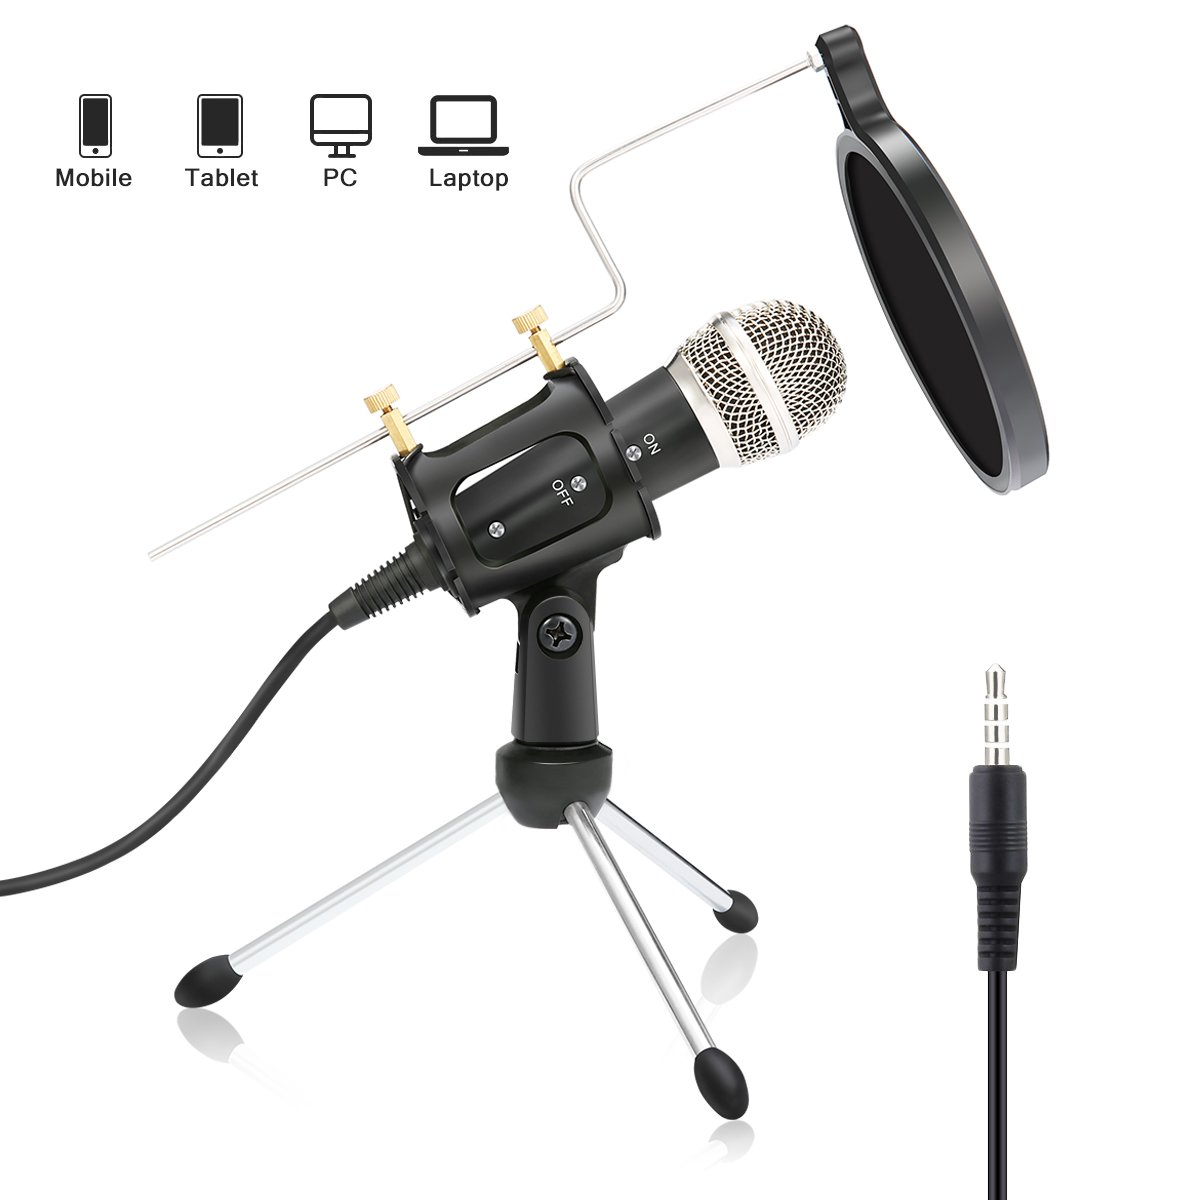 Condenser Microphone NASUM Portable Mini Recording Microphone Plug &Play Home Studio Microphone with 3.5mm Plug, Computer microphone for Voice Recording, Chatting, Cellphones, Tablets, Laptops, Mac, Windows NASUMOerwiod3231